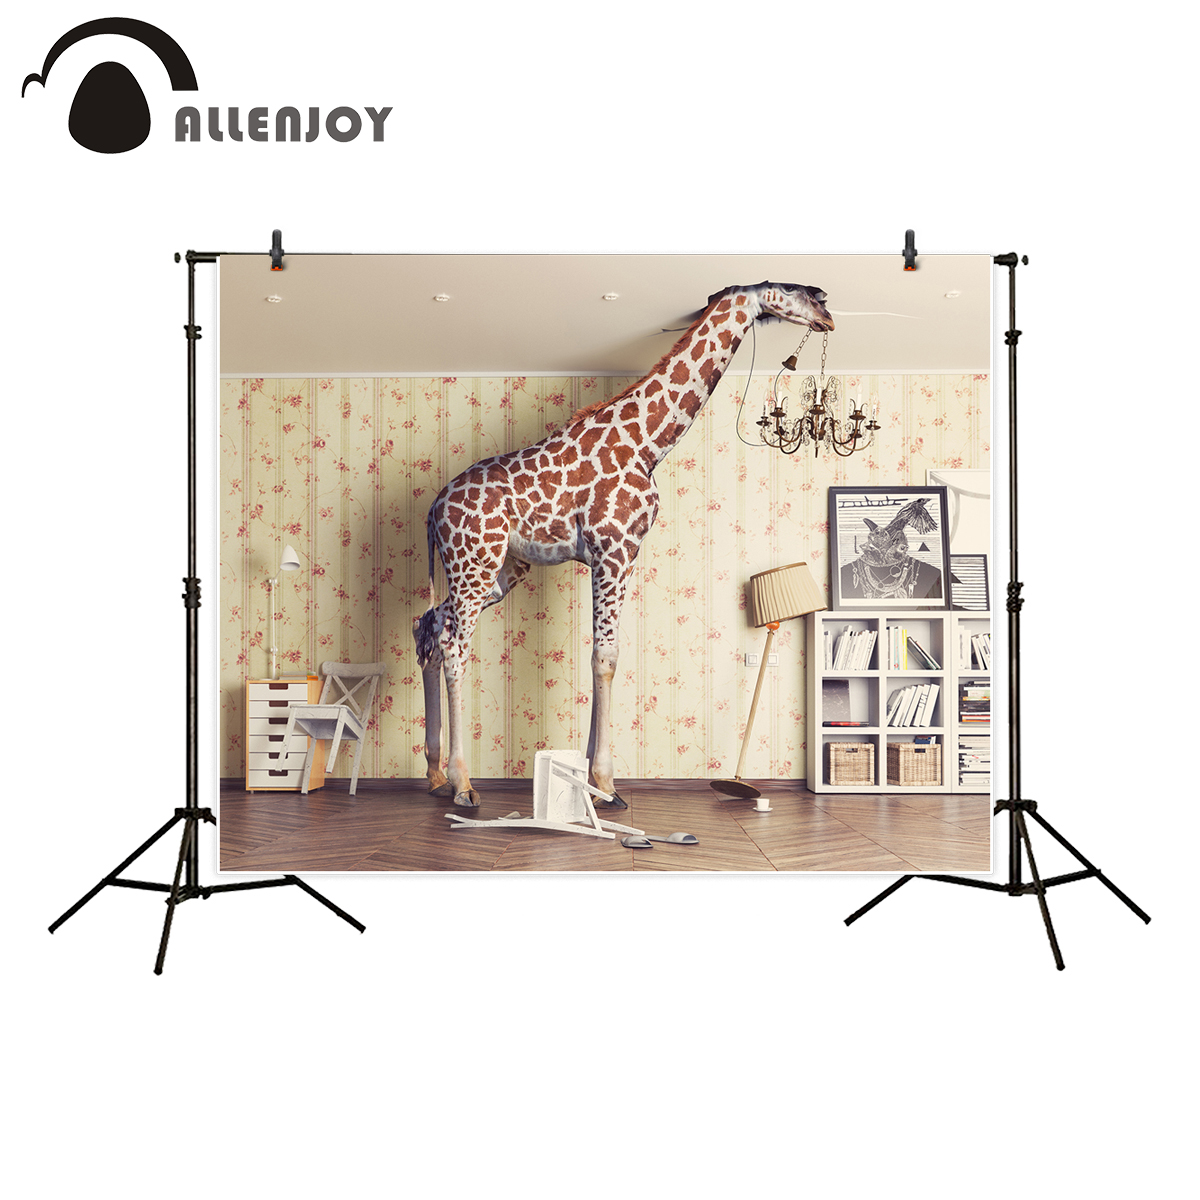 Allenjoy background for photo studio magical room giraffe child photography backdrop newborn photobooth professional allenjoy photography backdrop library books student child newborn photo studio photocall background original design